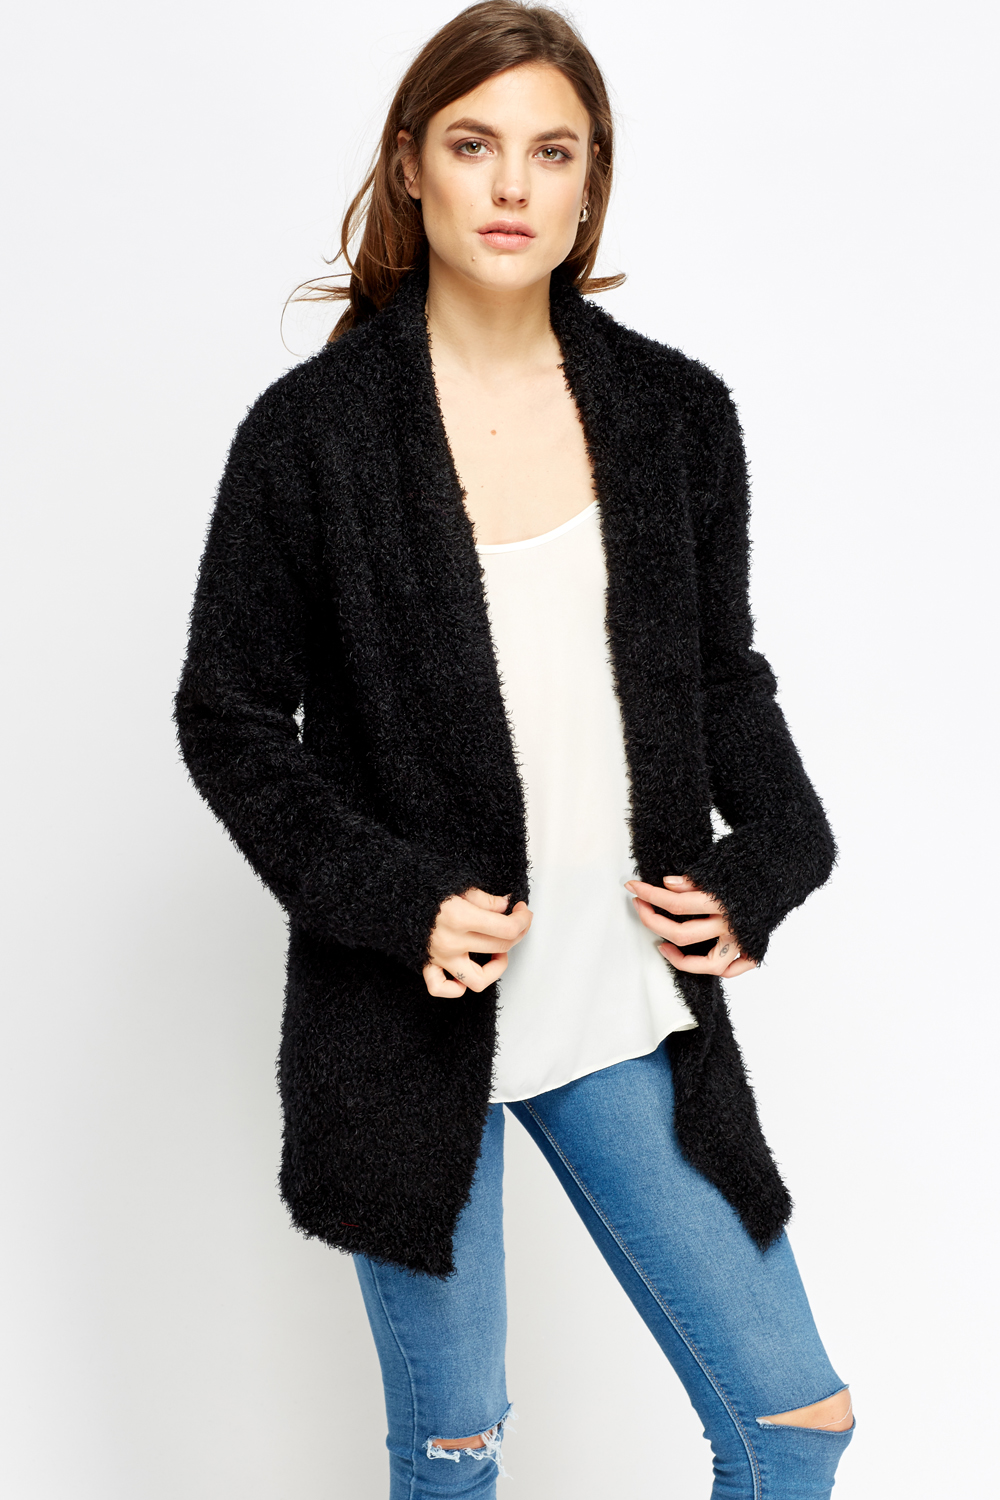 Cardigans | Buy cheap Cardigans for just £5 on Everything5pounds.com